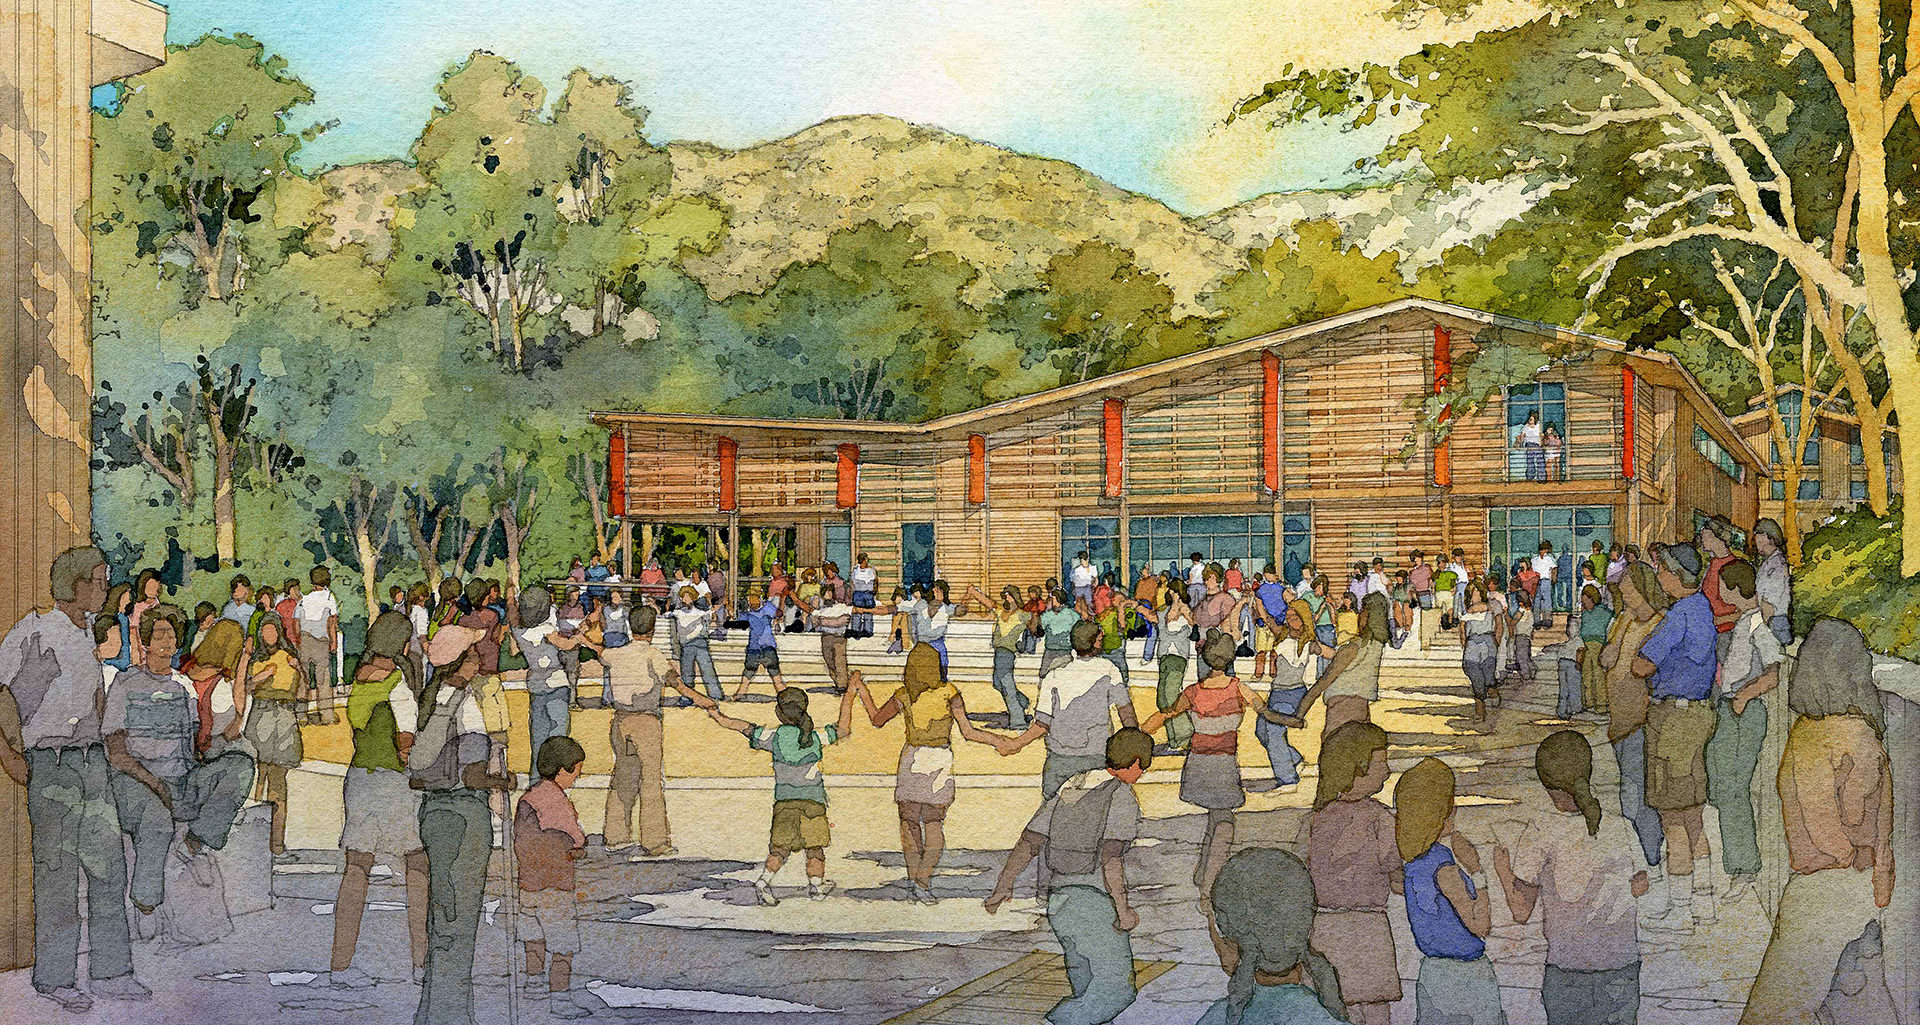 Wilshire Boulevard Temple Camps | Renderings by Al Forster